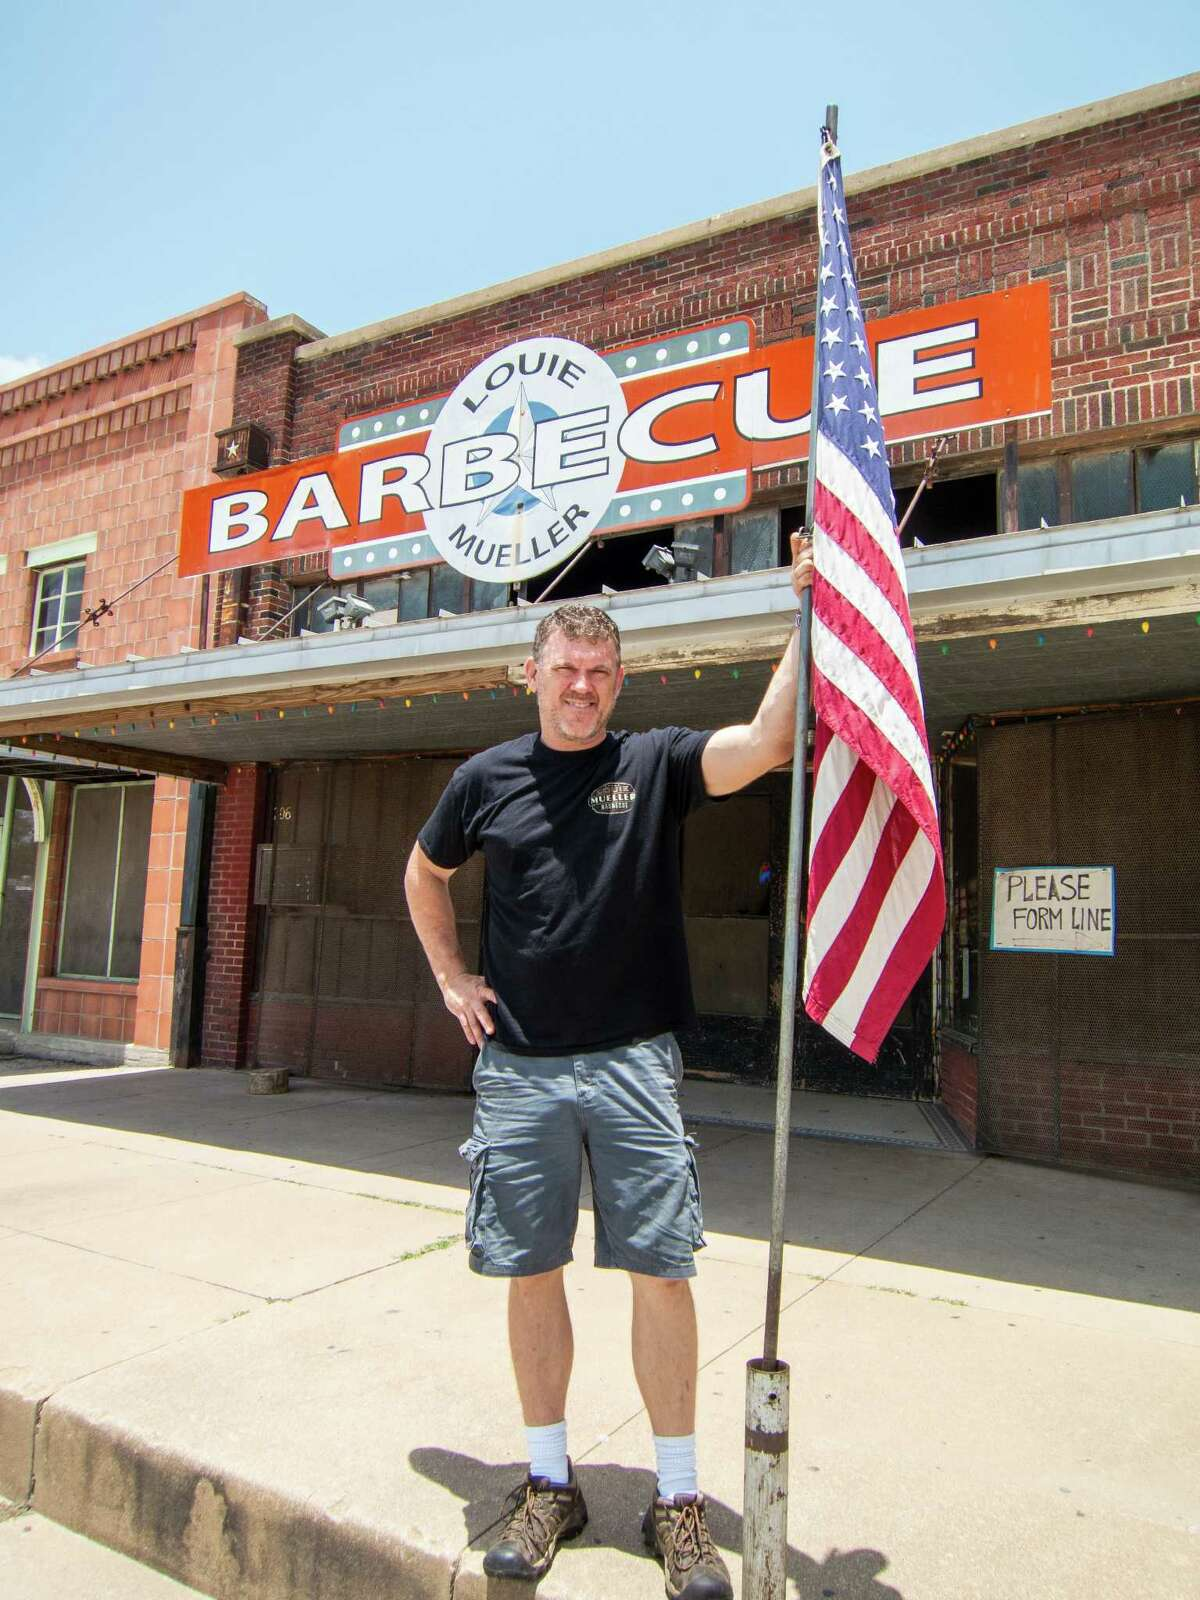 Wayne Mueller is a third-generation pitmaster at Louie Mueller Barbecue.